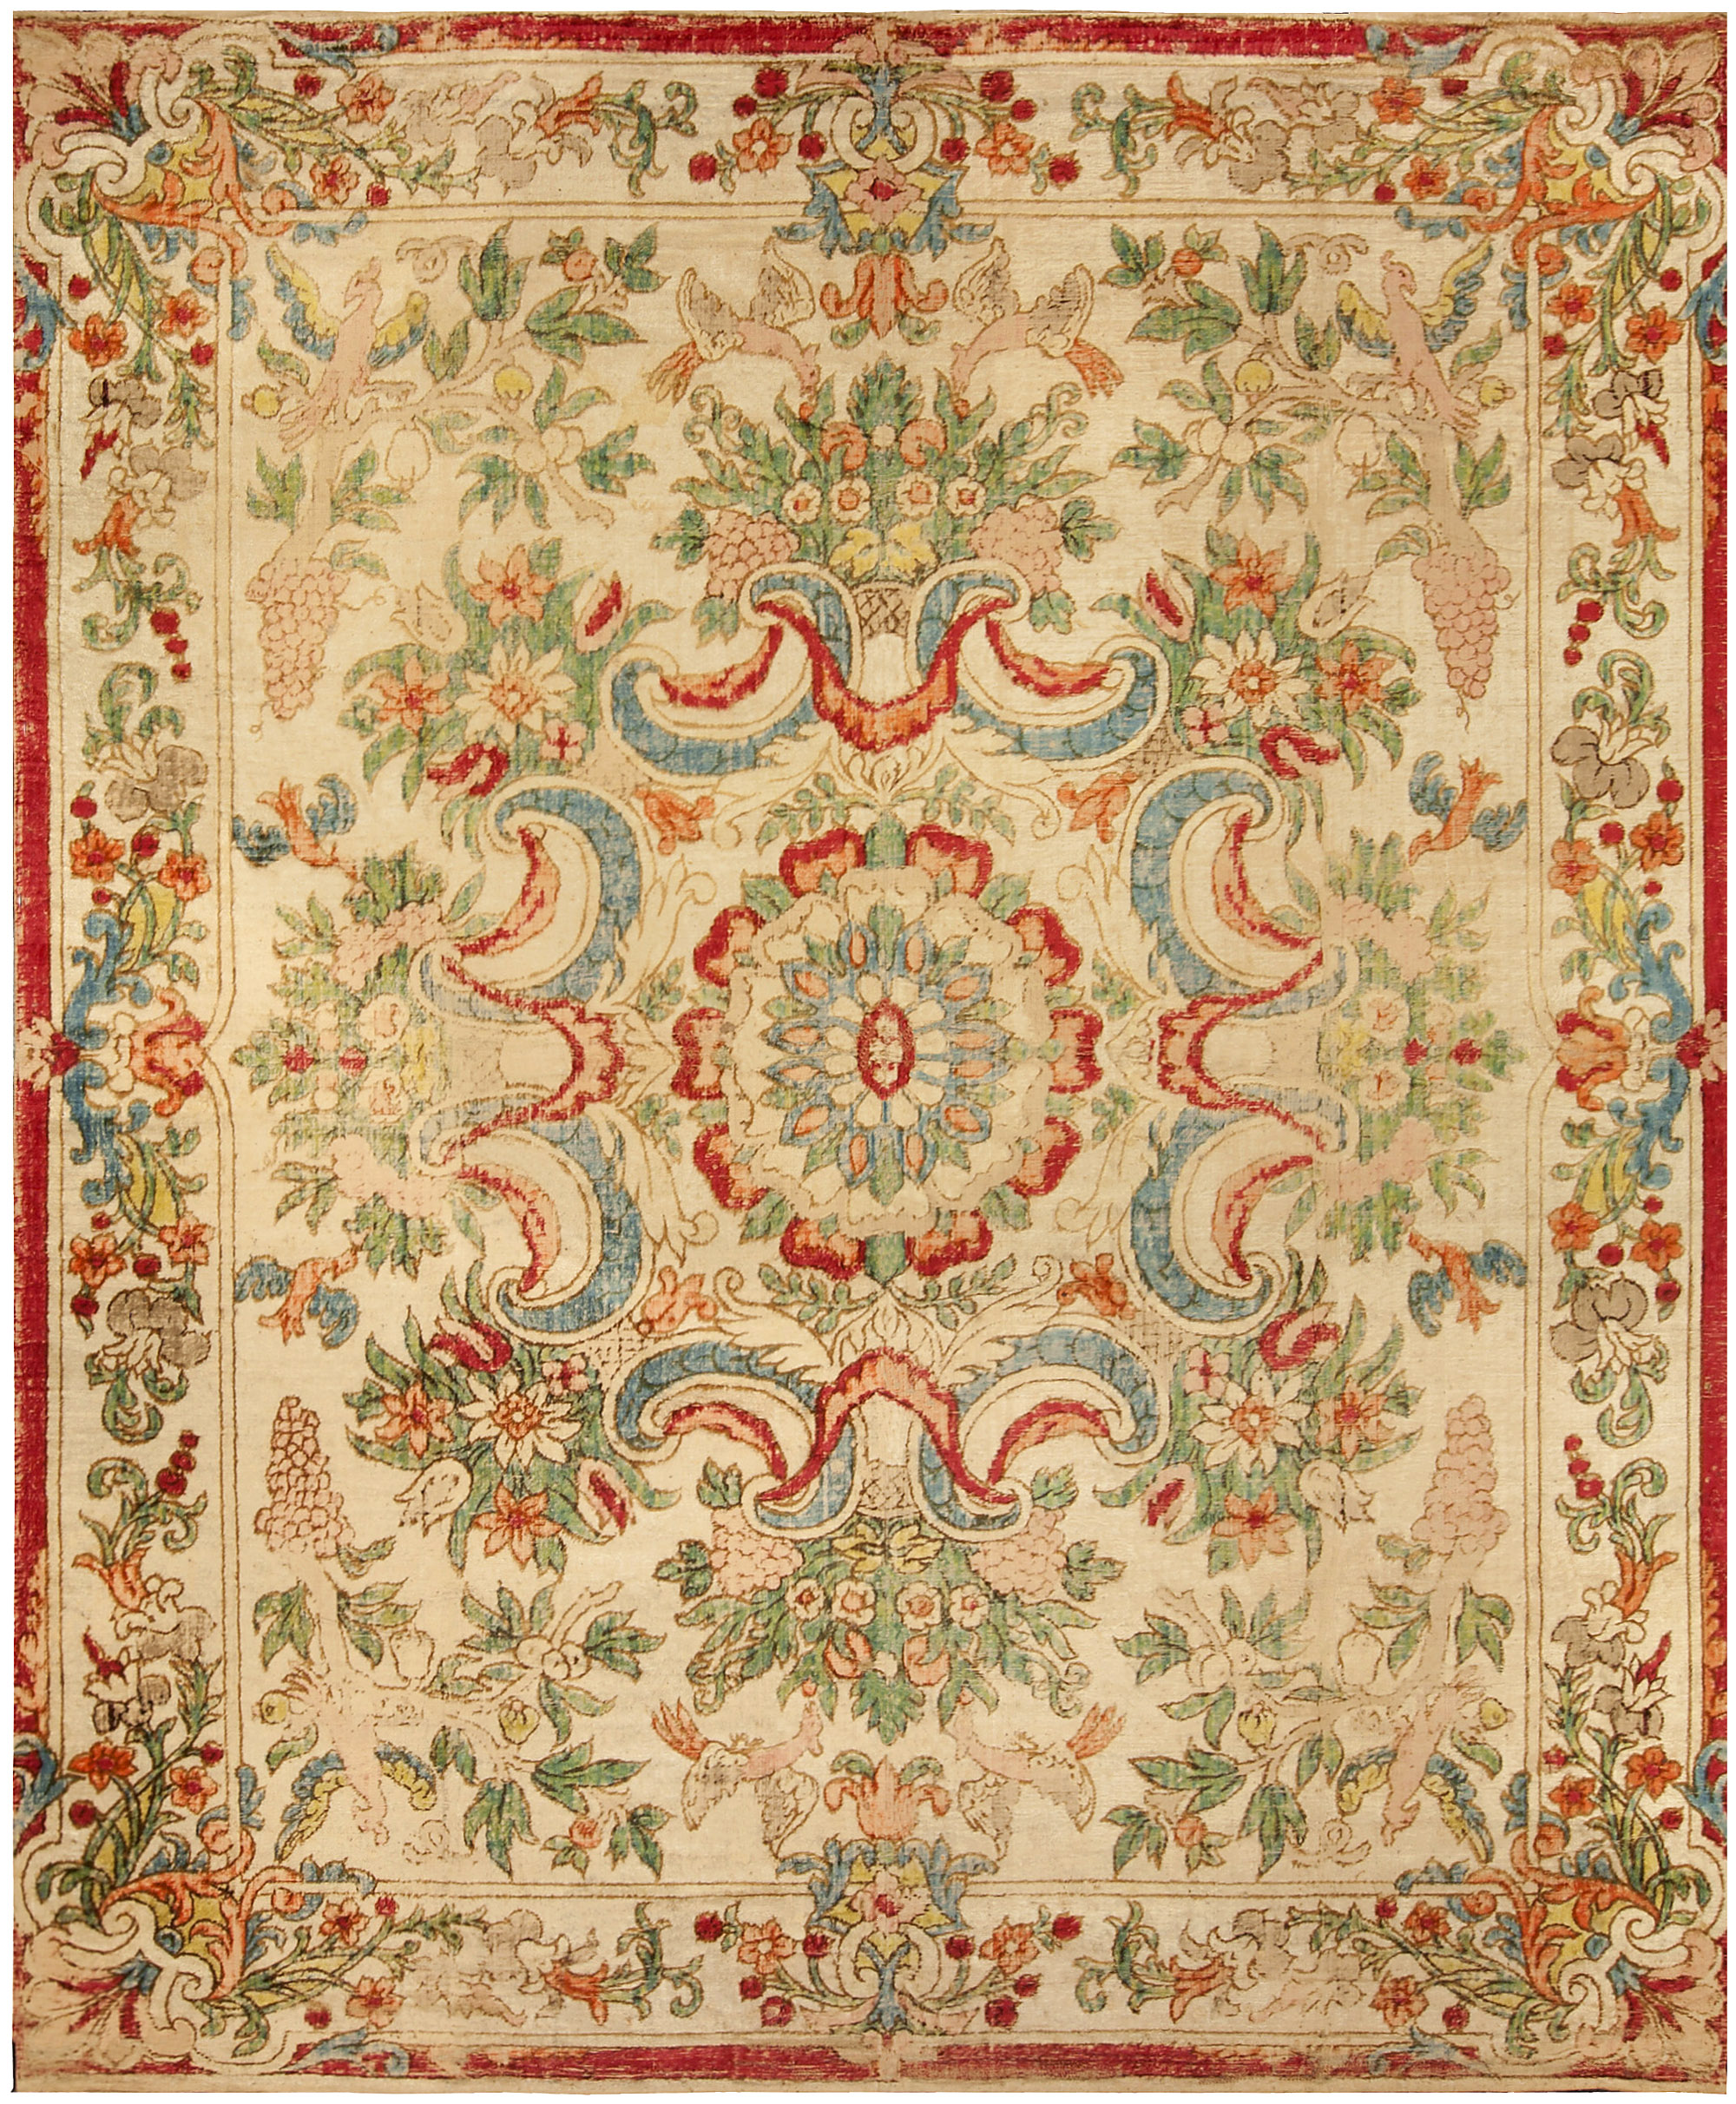 Antique French Aubusson Rug Antique French Aubusson Rug Antique European  Silk Table Carpet ...